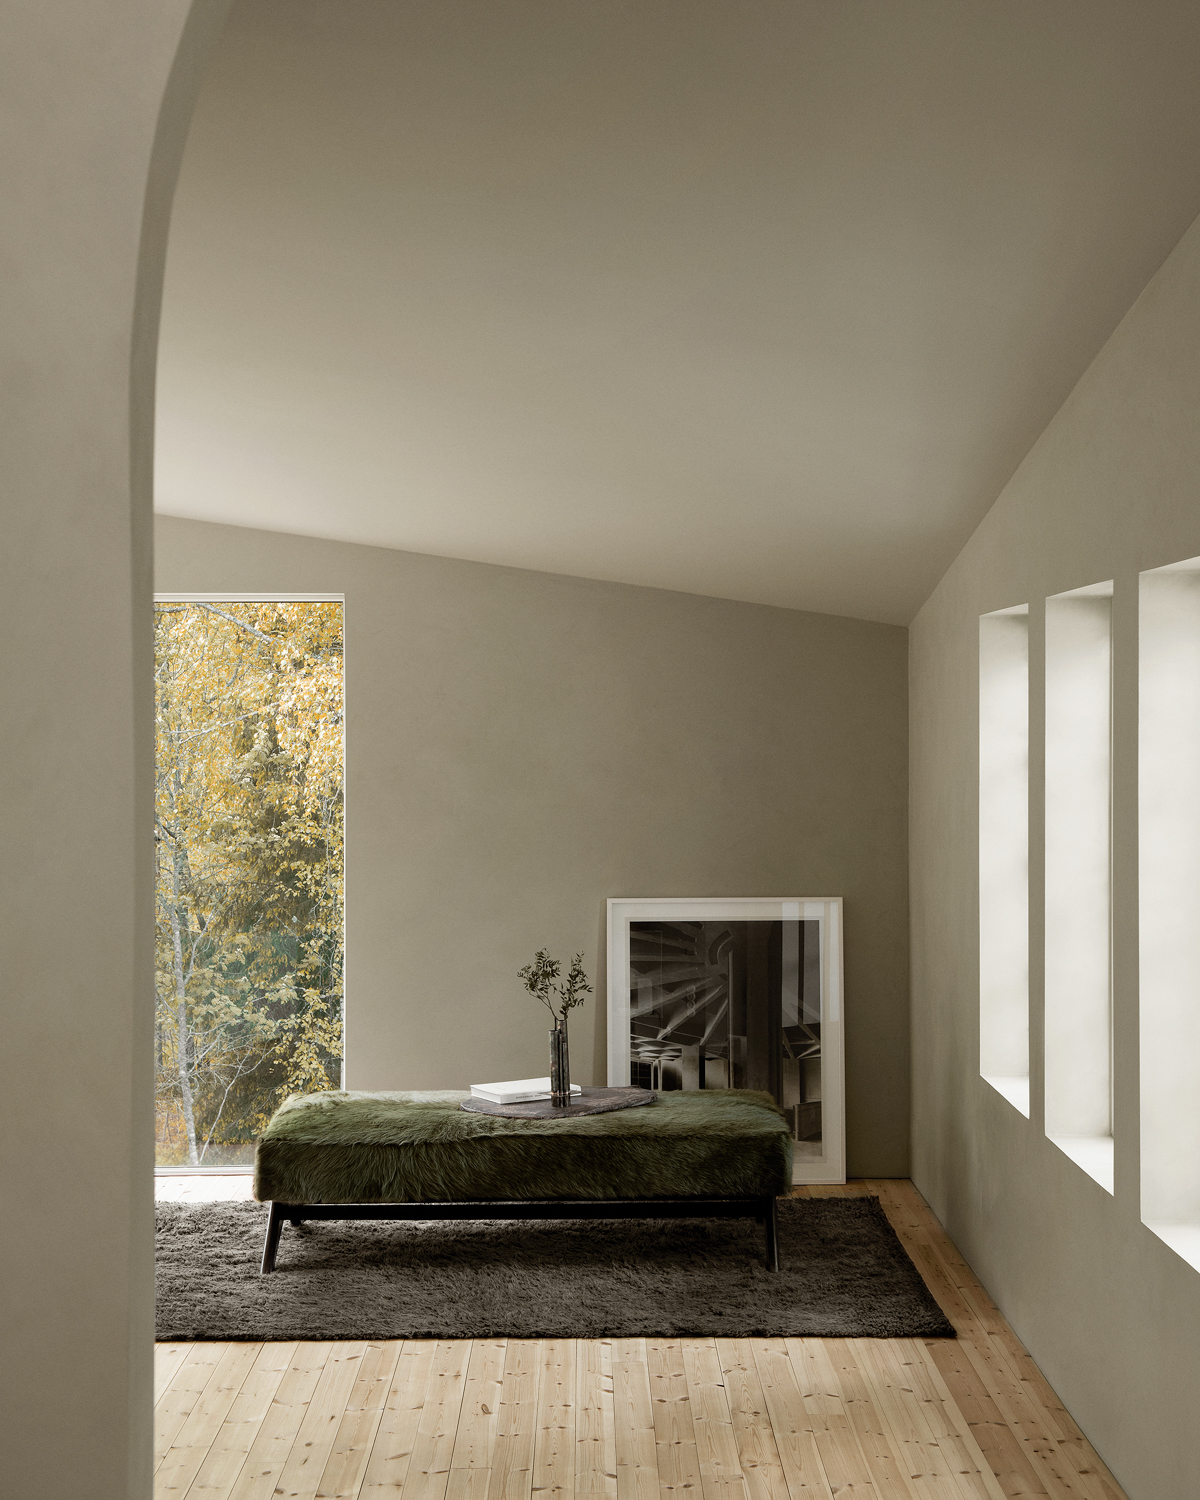 Fields in anthracite in a beautiful room with large windows overlooking the woods.